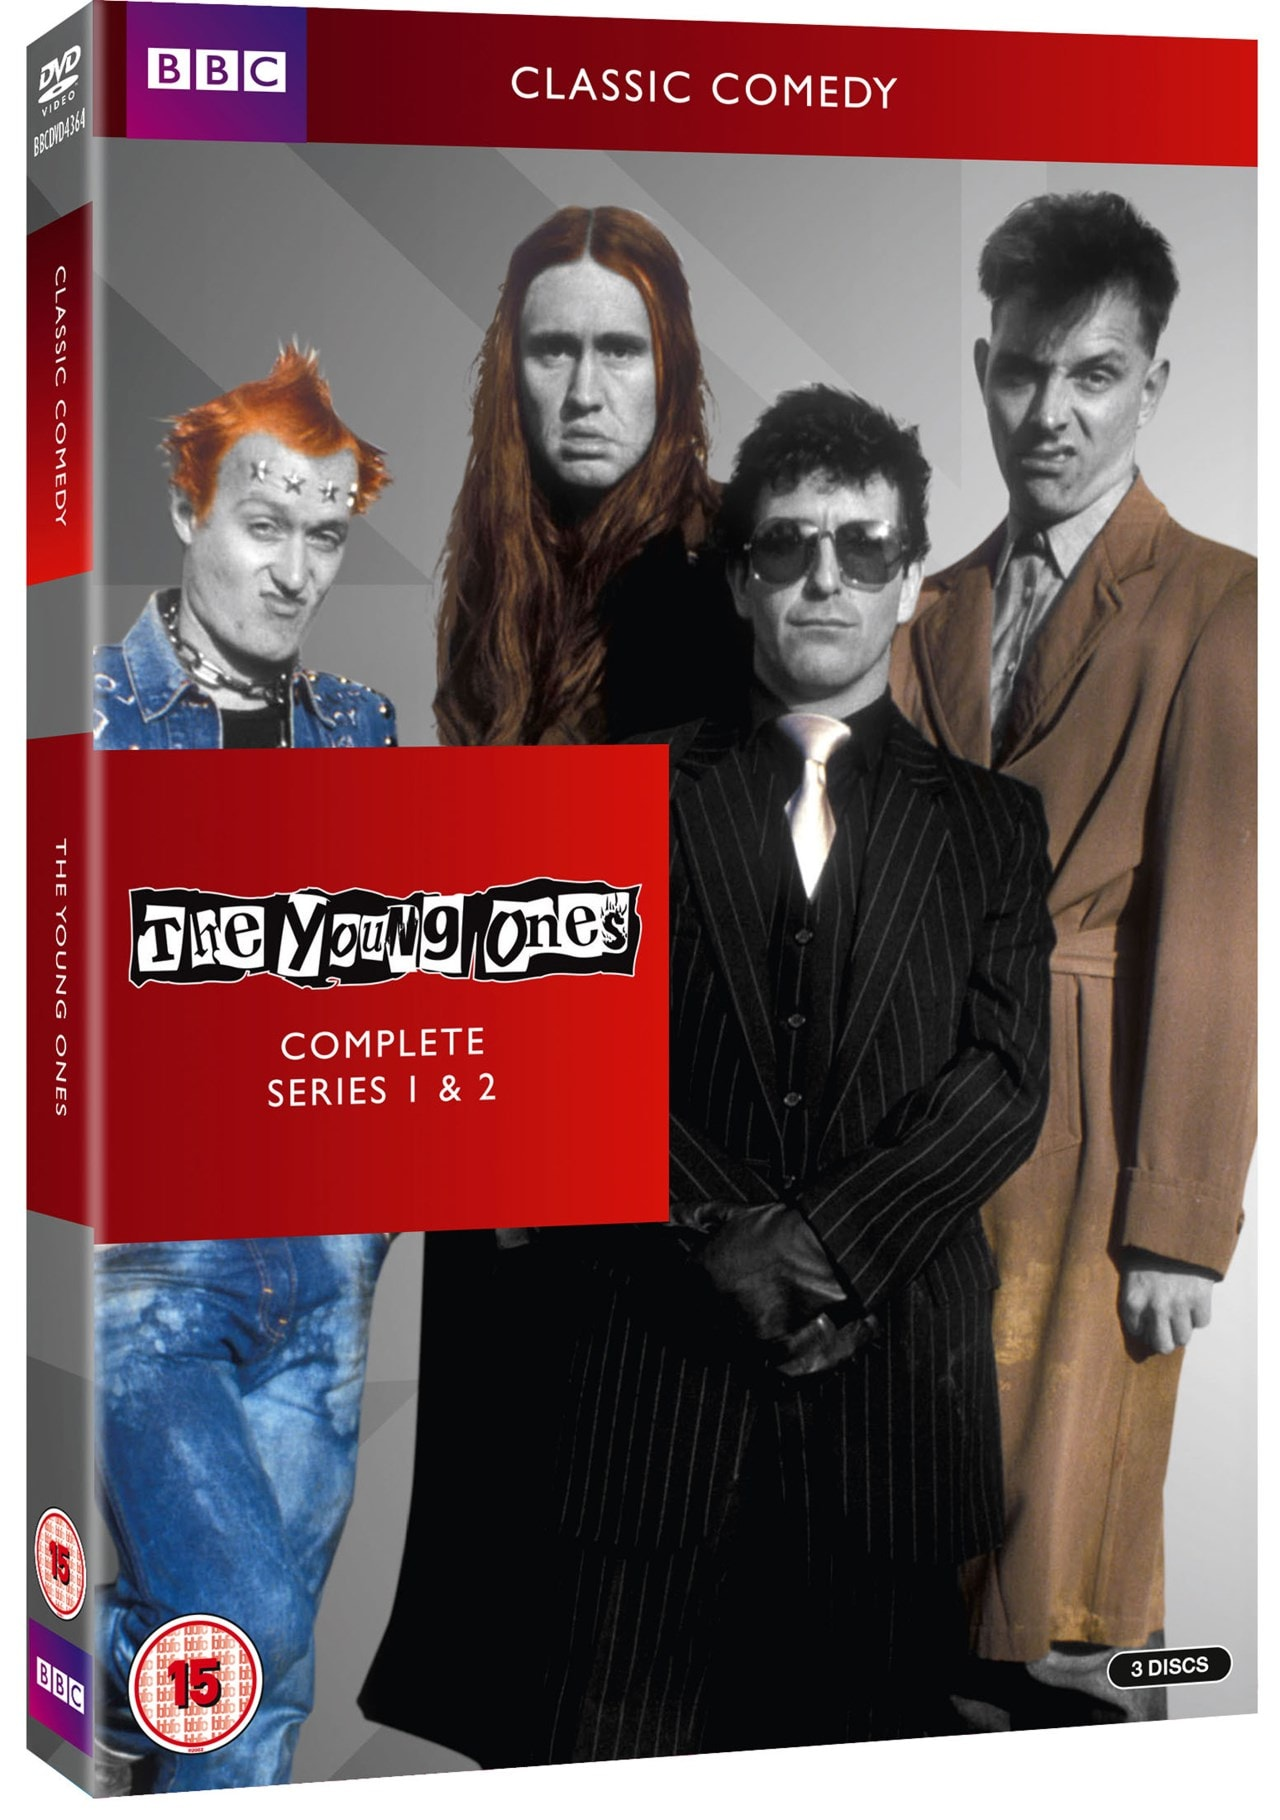 The Young Ones Complete Series 1 2 Hmv Exclusive Dvd Box Set Free Shipping Over 20 Hmv Store